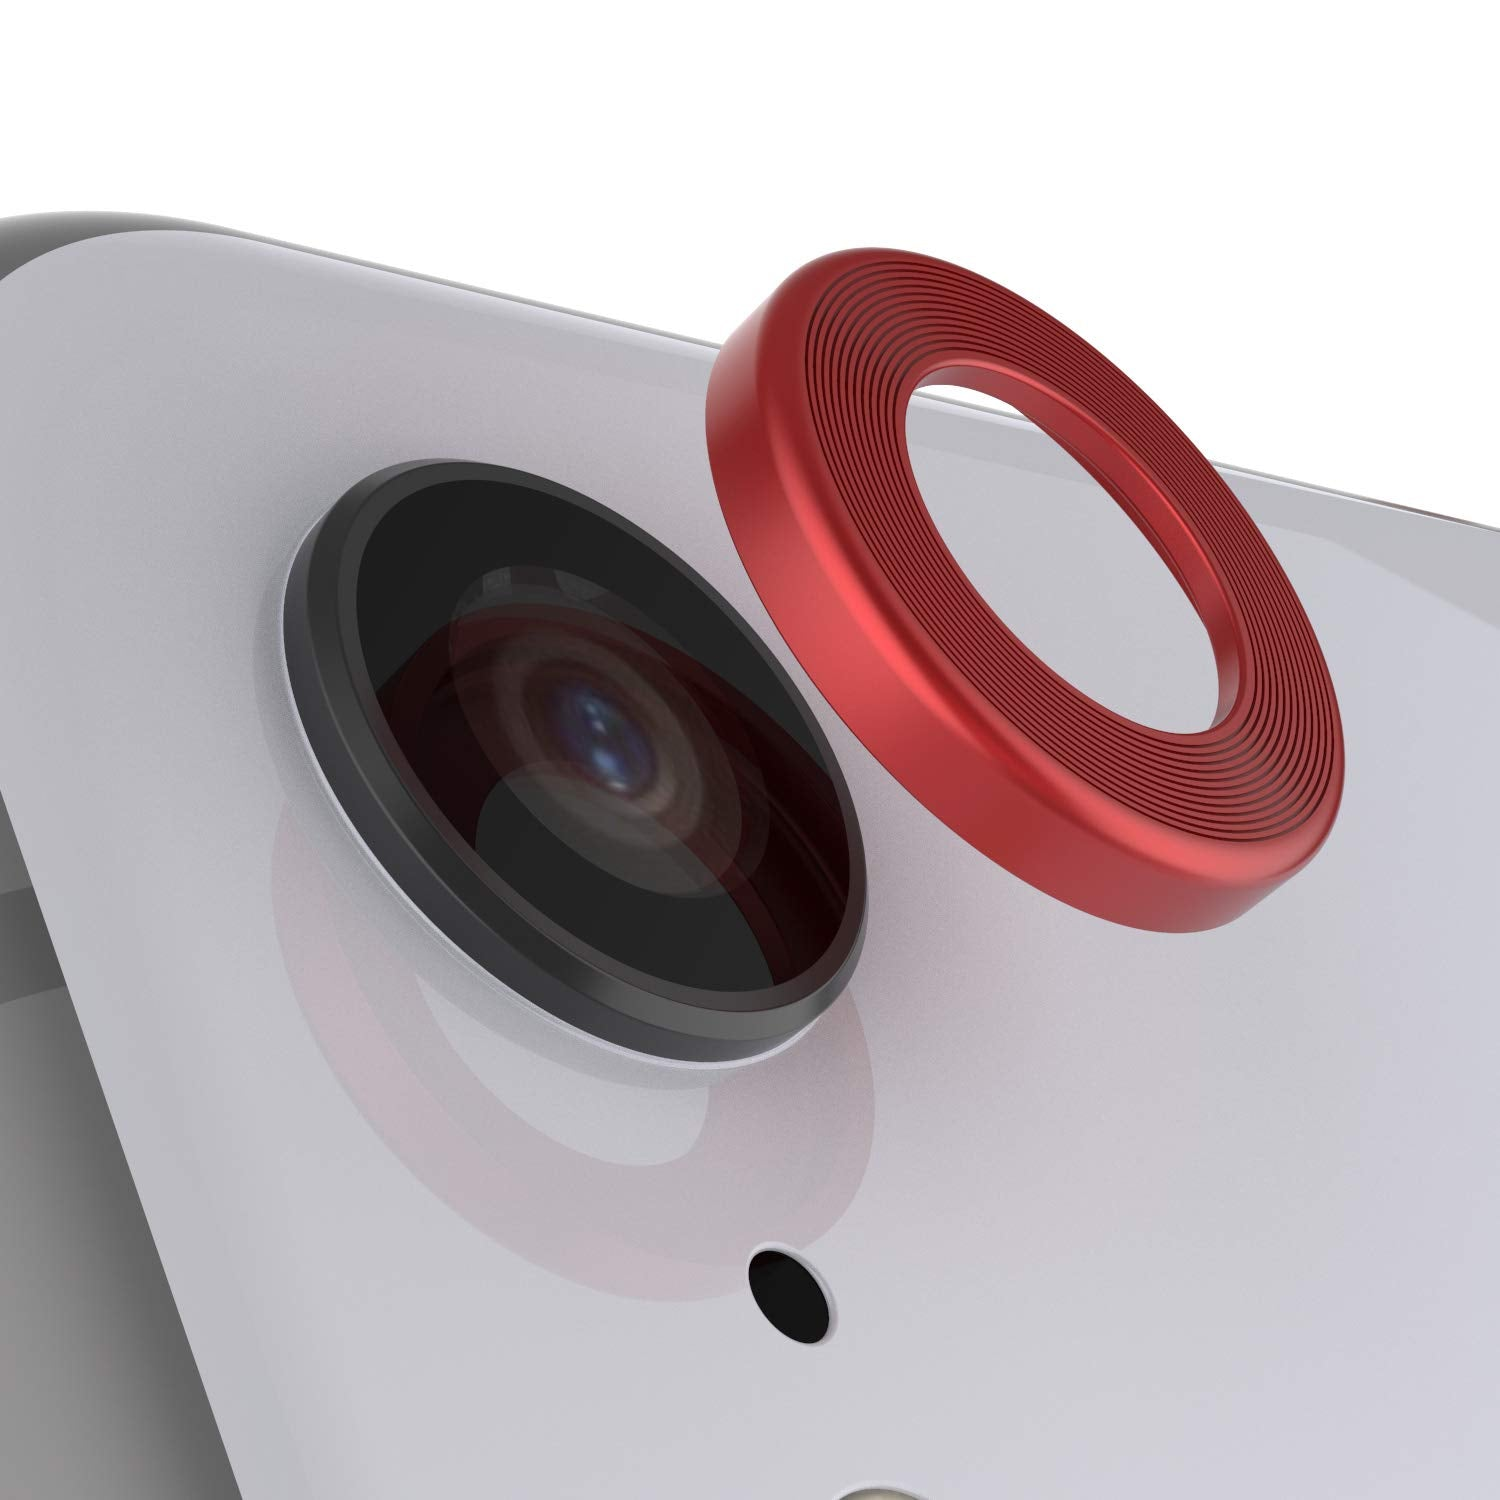 Punkcase iPhone XR Camera Protector Ring [Red]